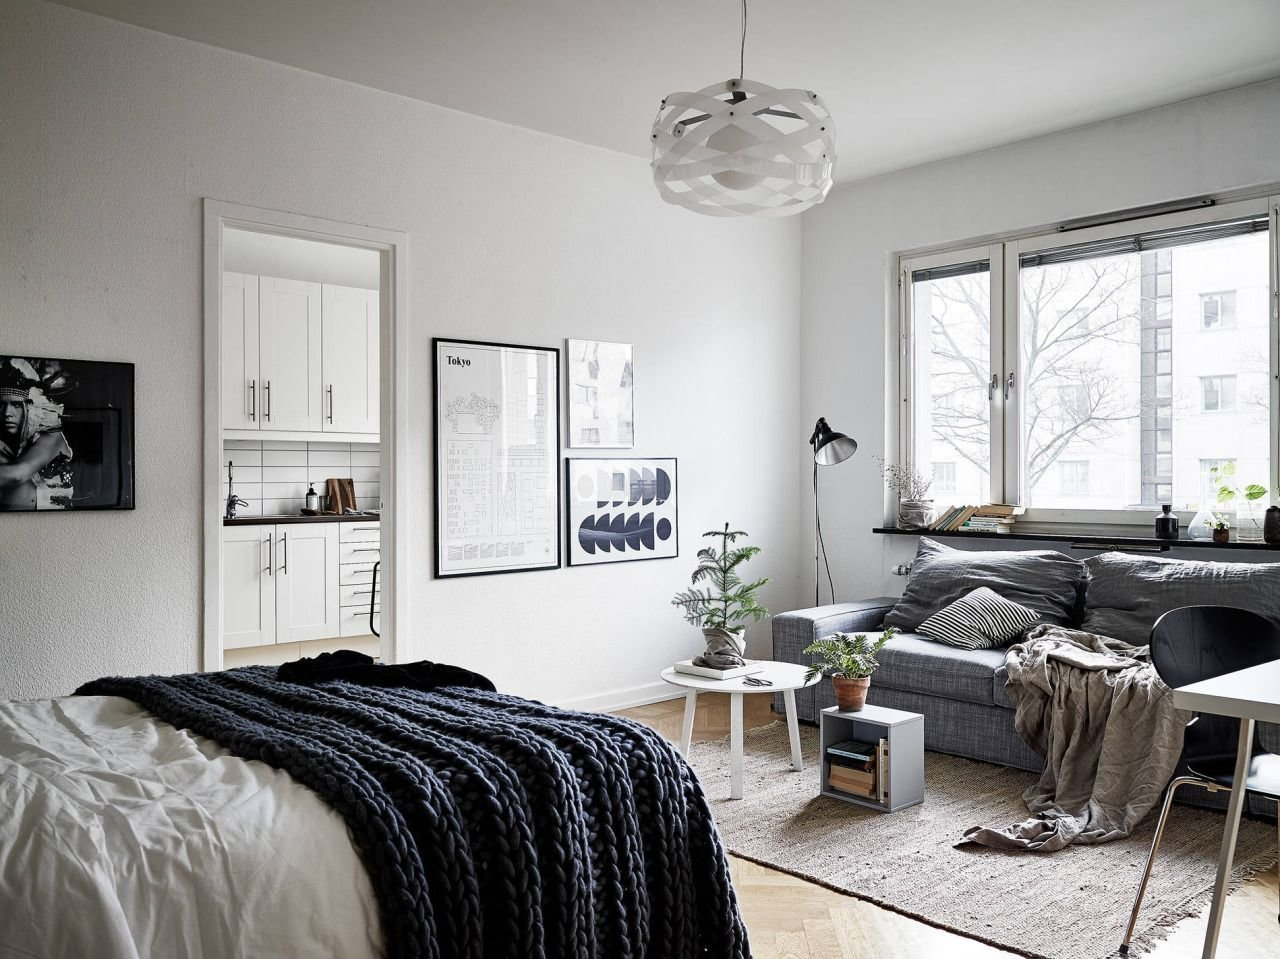 Best Simple Decor Studio Apartment Are You Looking For With Pictures